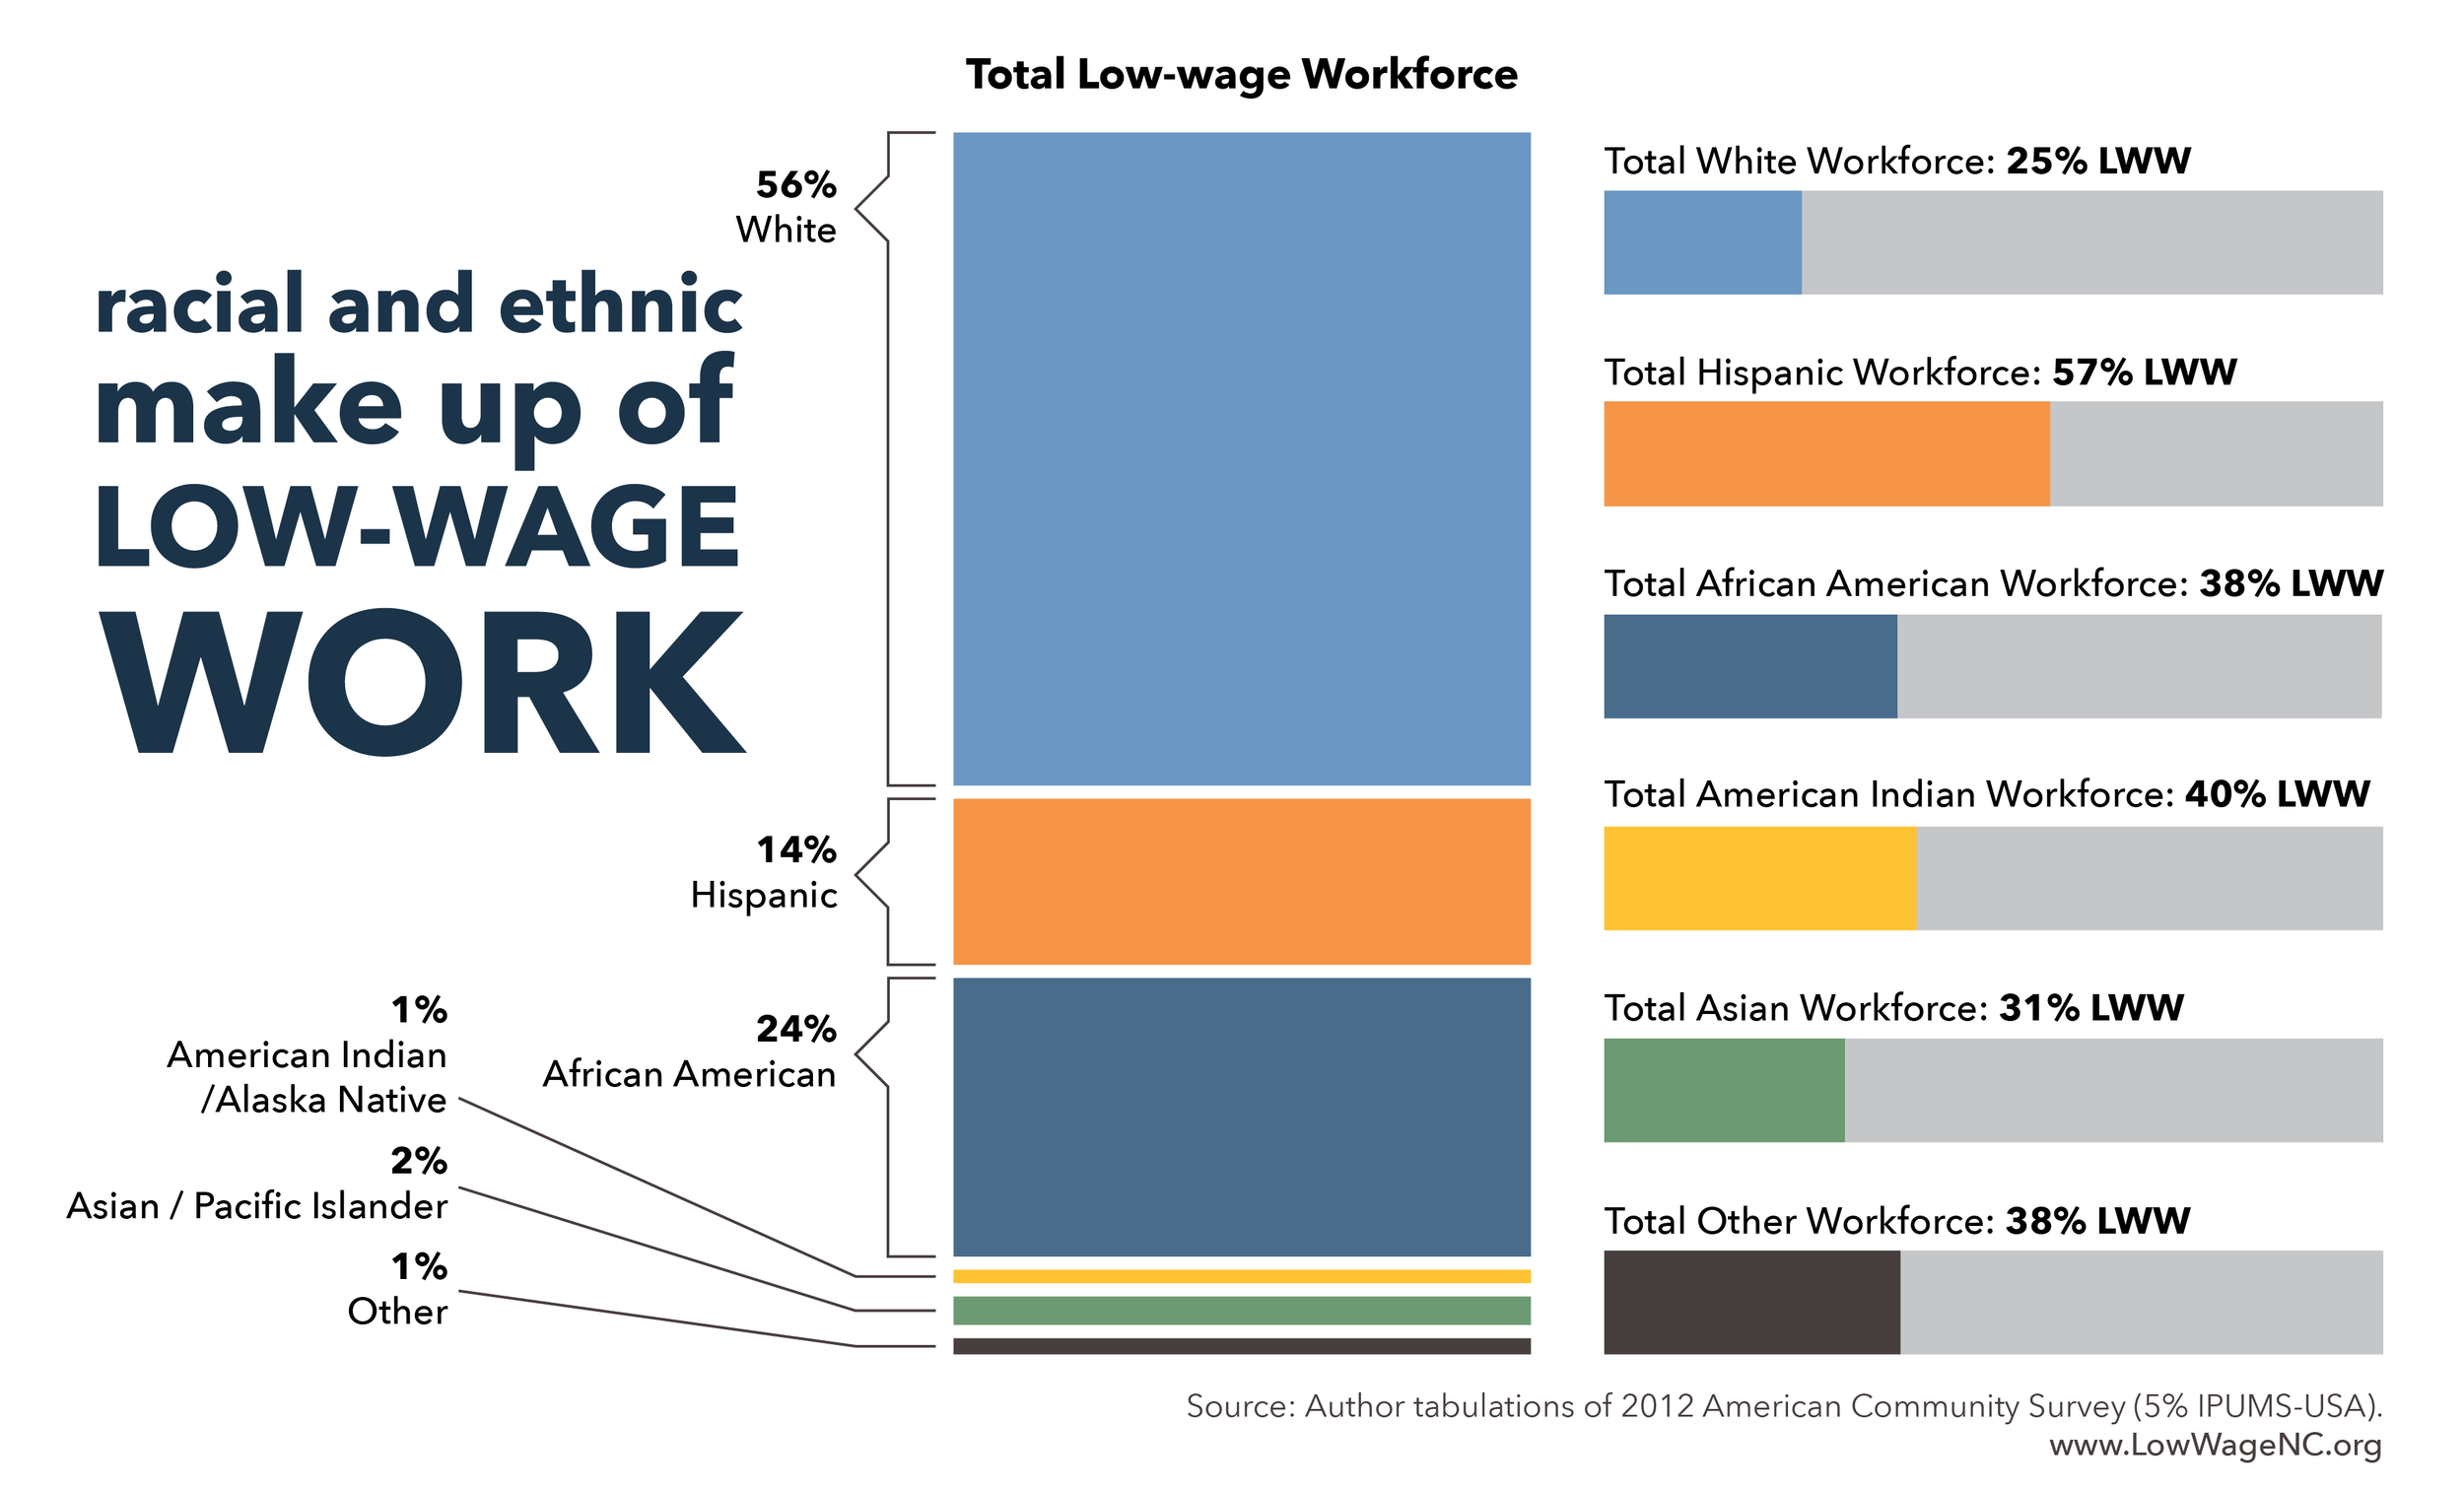 White workers account for the largest number of low-wage workers in north carolina. However, the distribution of low-wage work within each racial and ethnic group reveals significant disparities. This disparity is particularly serious for hispanics: nearly 3 out of 5 hispanic workers in NC work in a low-wage job.